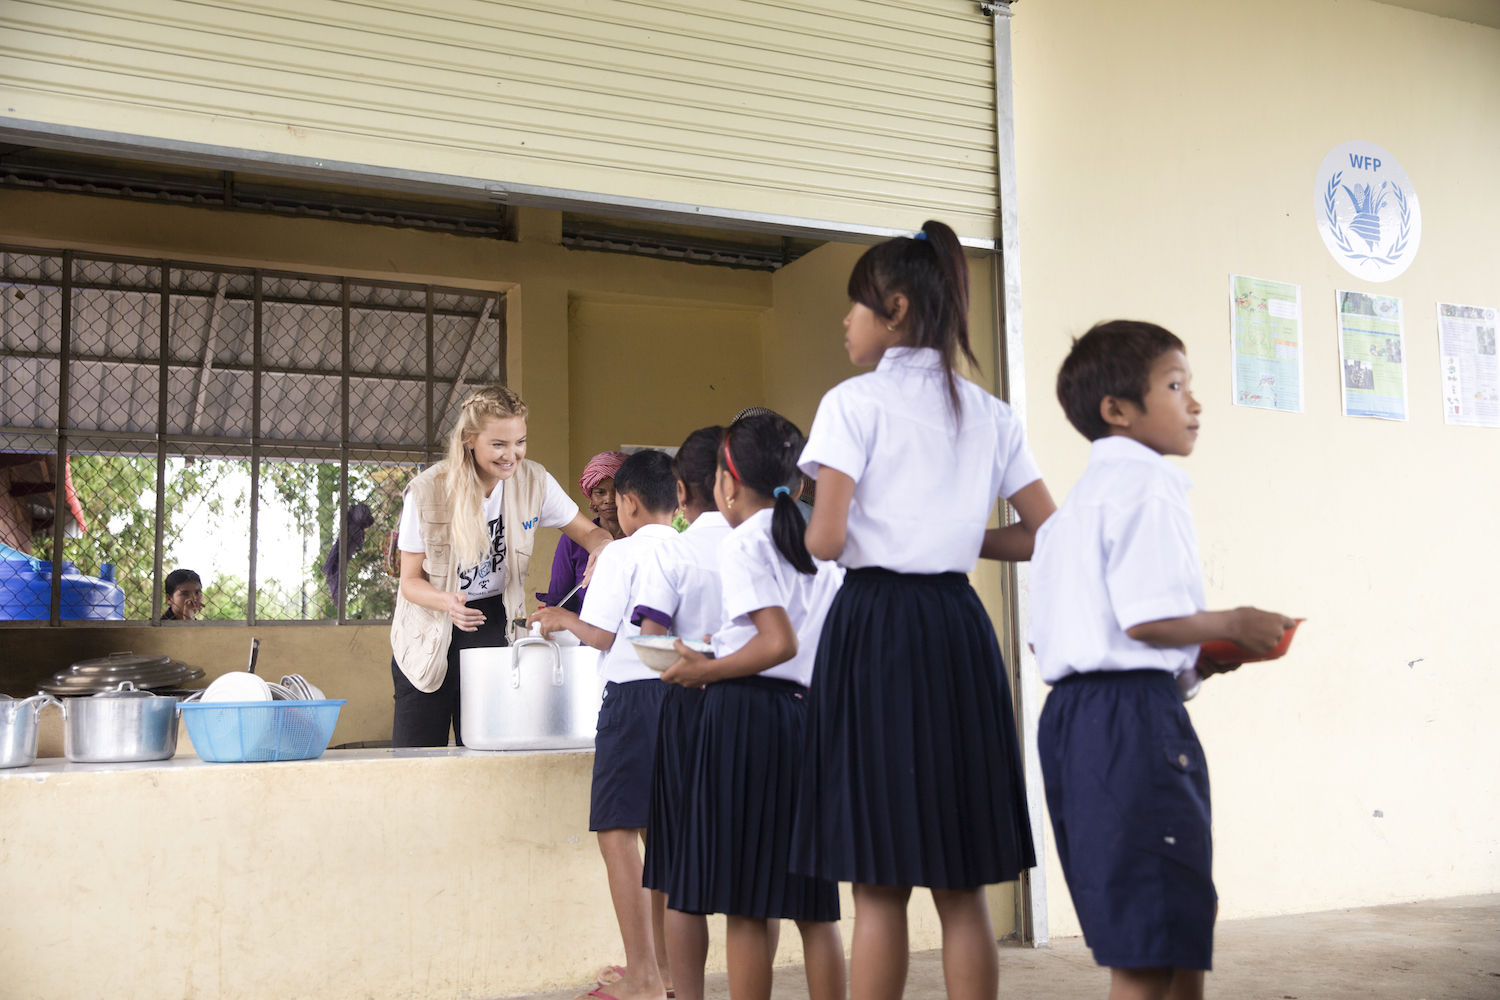 Kate Hudson's visit to schools in Cambodia as part of the Michael Kors 'Watch Hunger Stop' campaign Photographs by Tim Bishop/Quite Frankly Productions